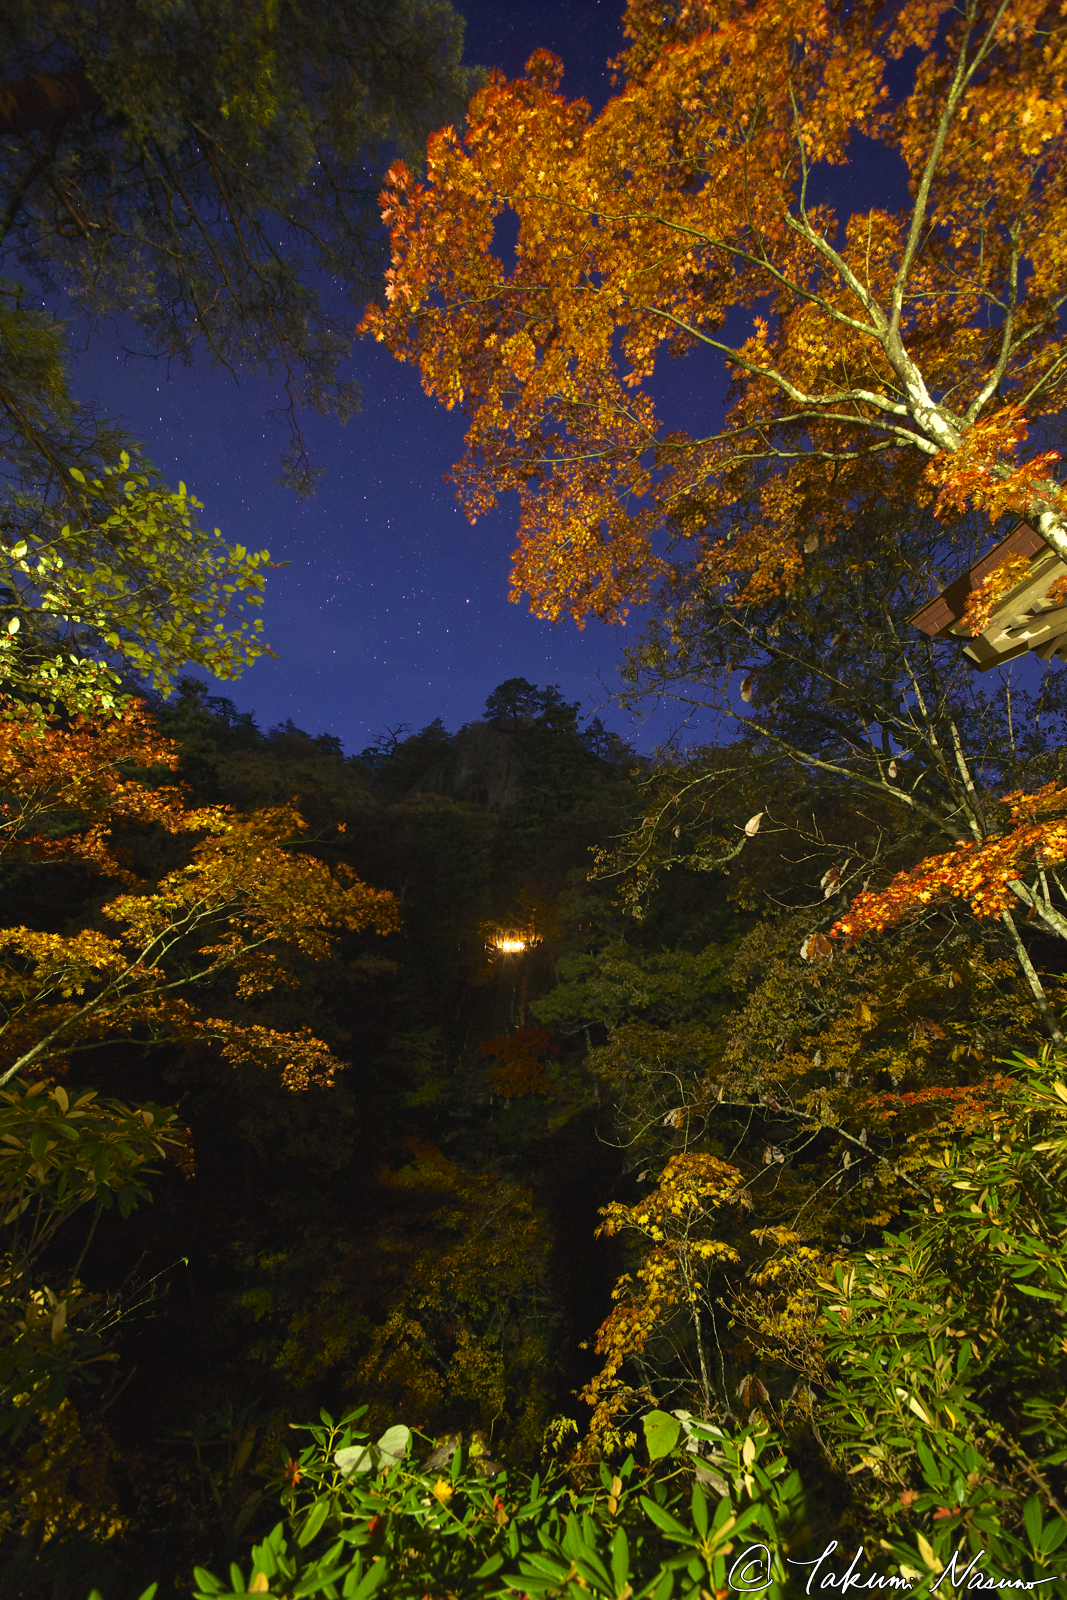 starscapes-and-autumn-colors